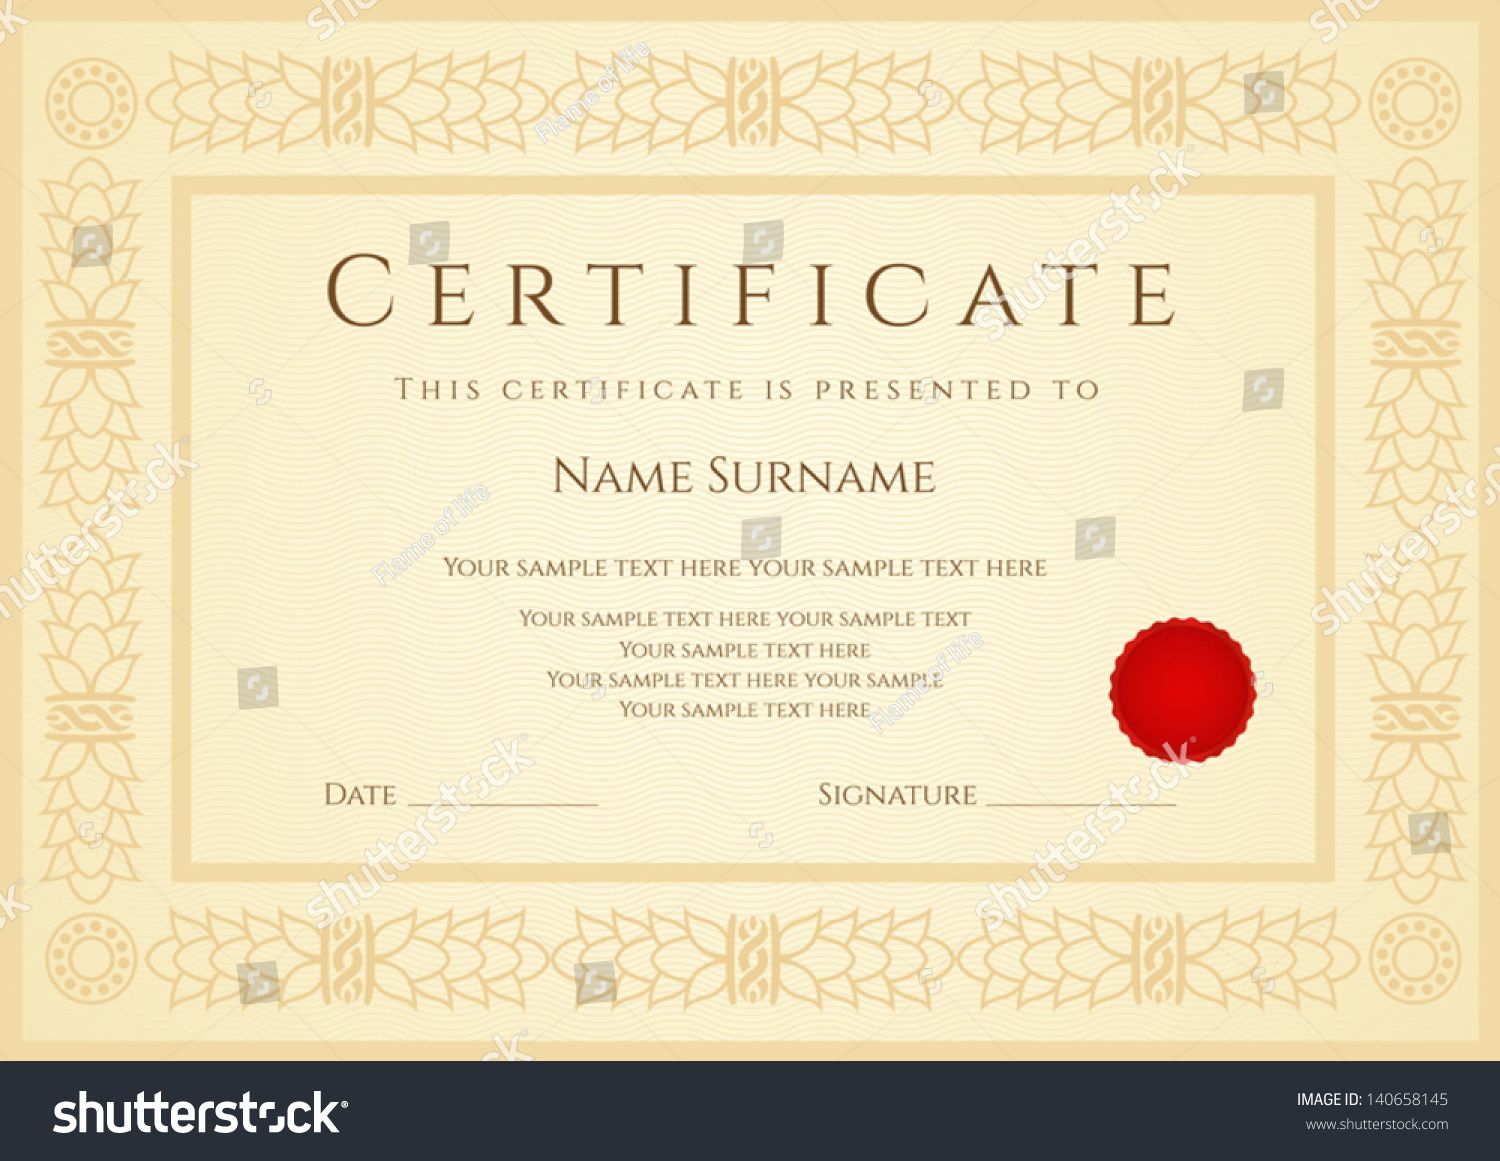 Certificate / Diploma Of Completion (Design Template / Sample Background)  With Guilloche Pattern (